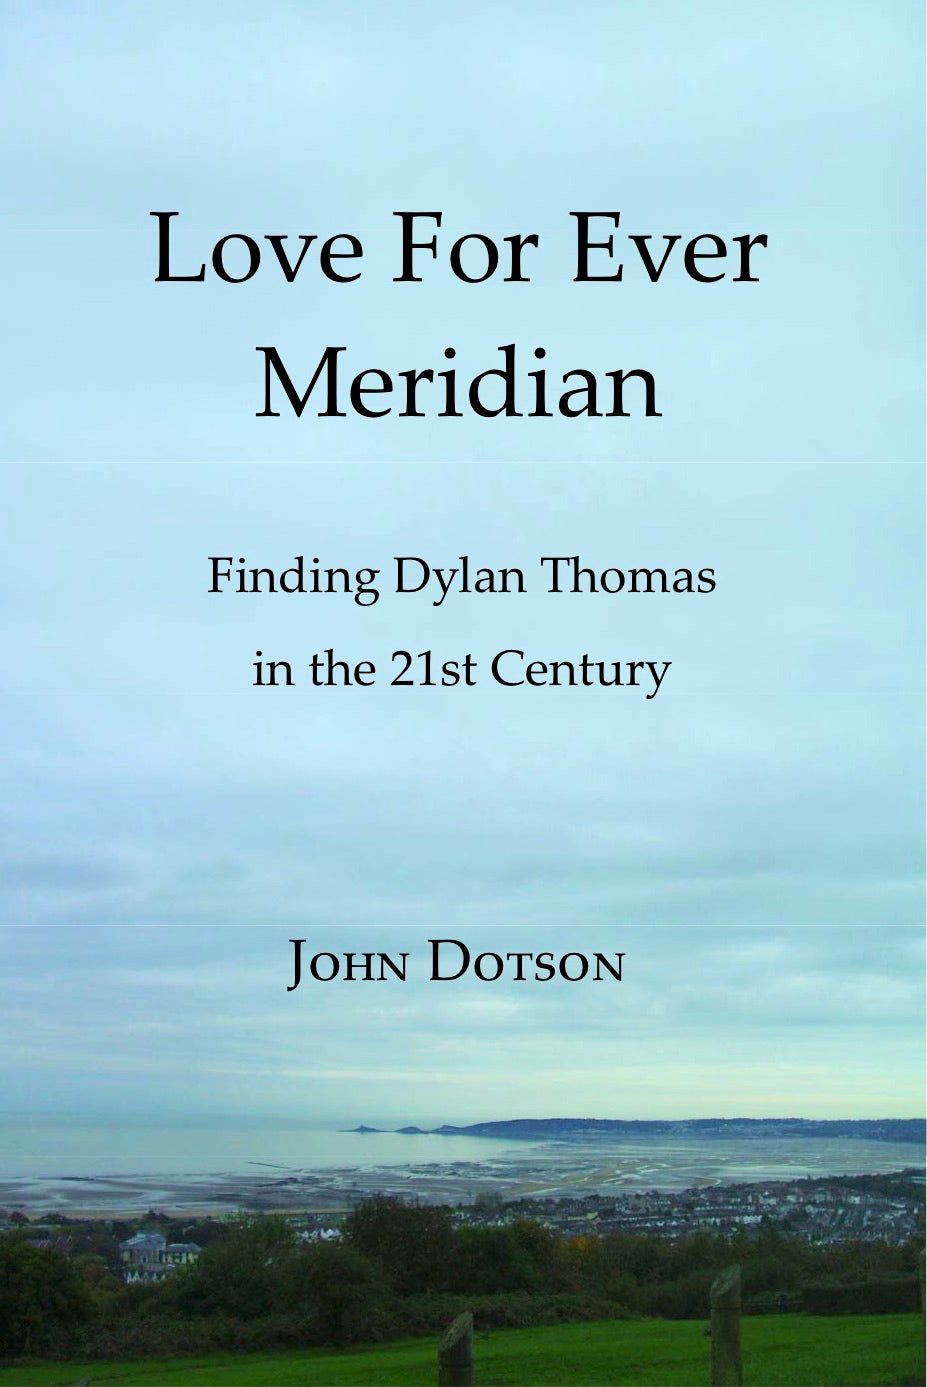 LOVE FOR EVER MERIDIAN/FINDING DYLAN THOMAS IN THE 21ST CENTURY by American writer John Dotson, 2012